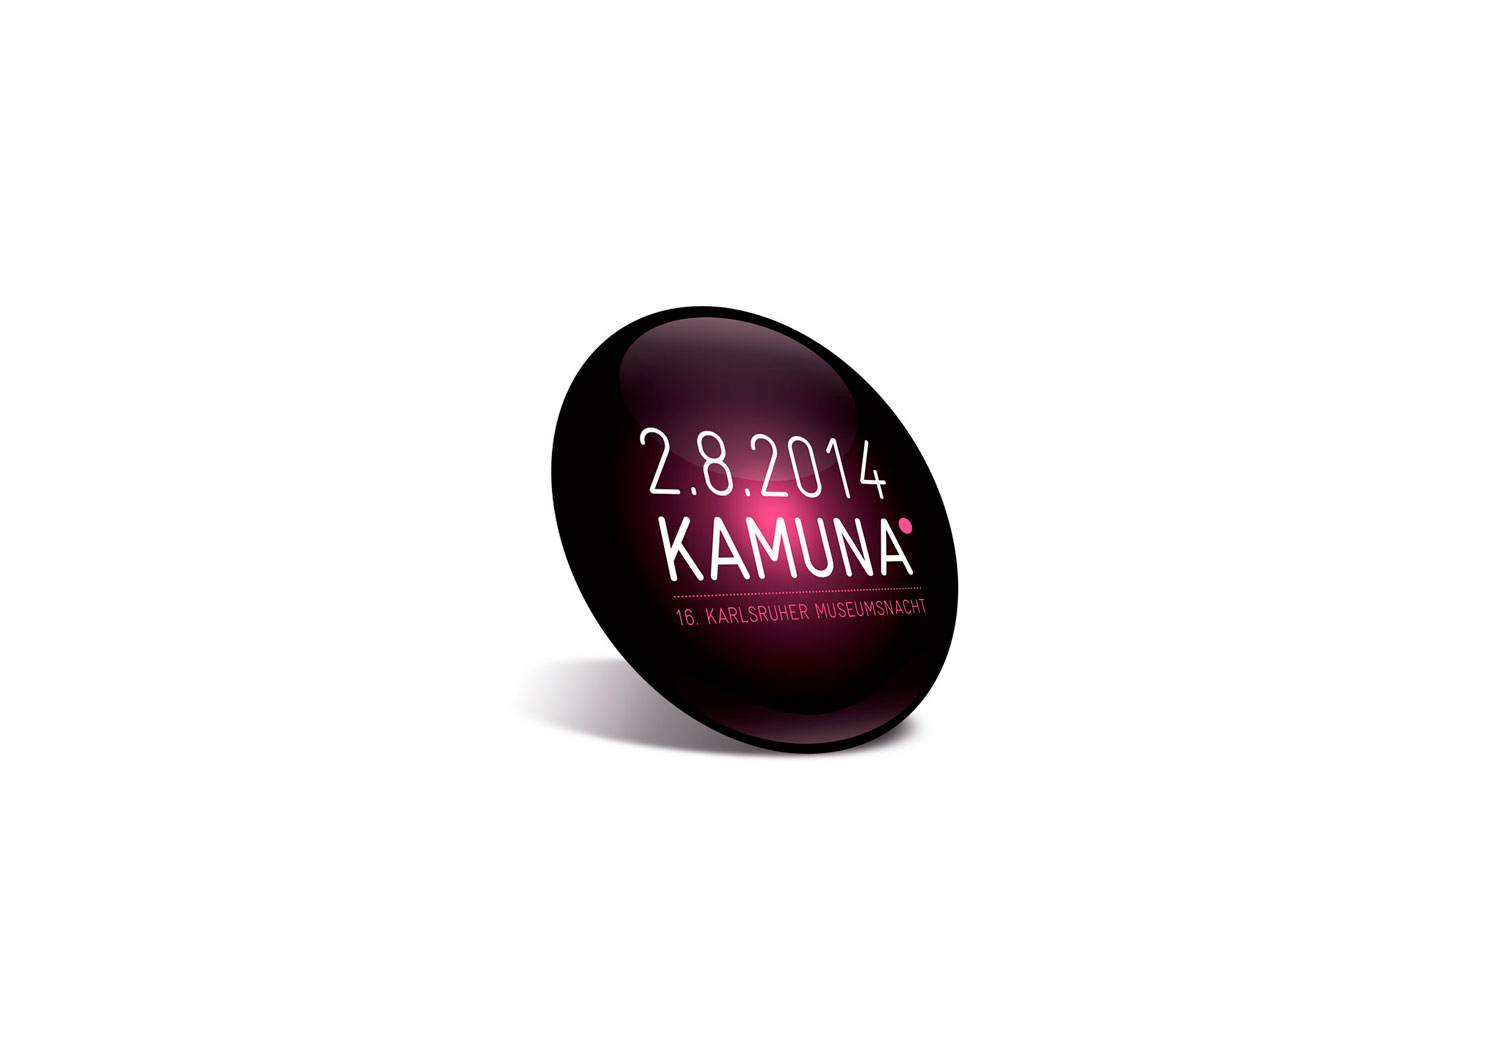 zwo-elf_Kamuna_Button_1